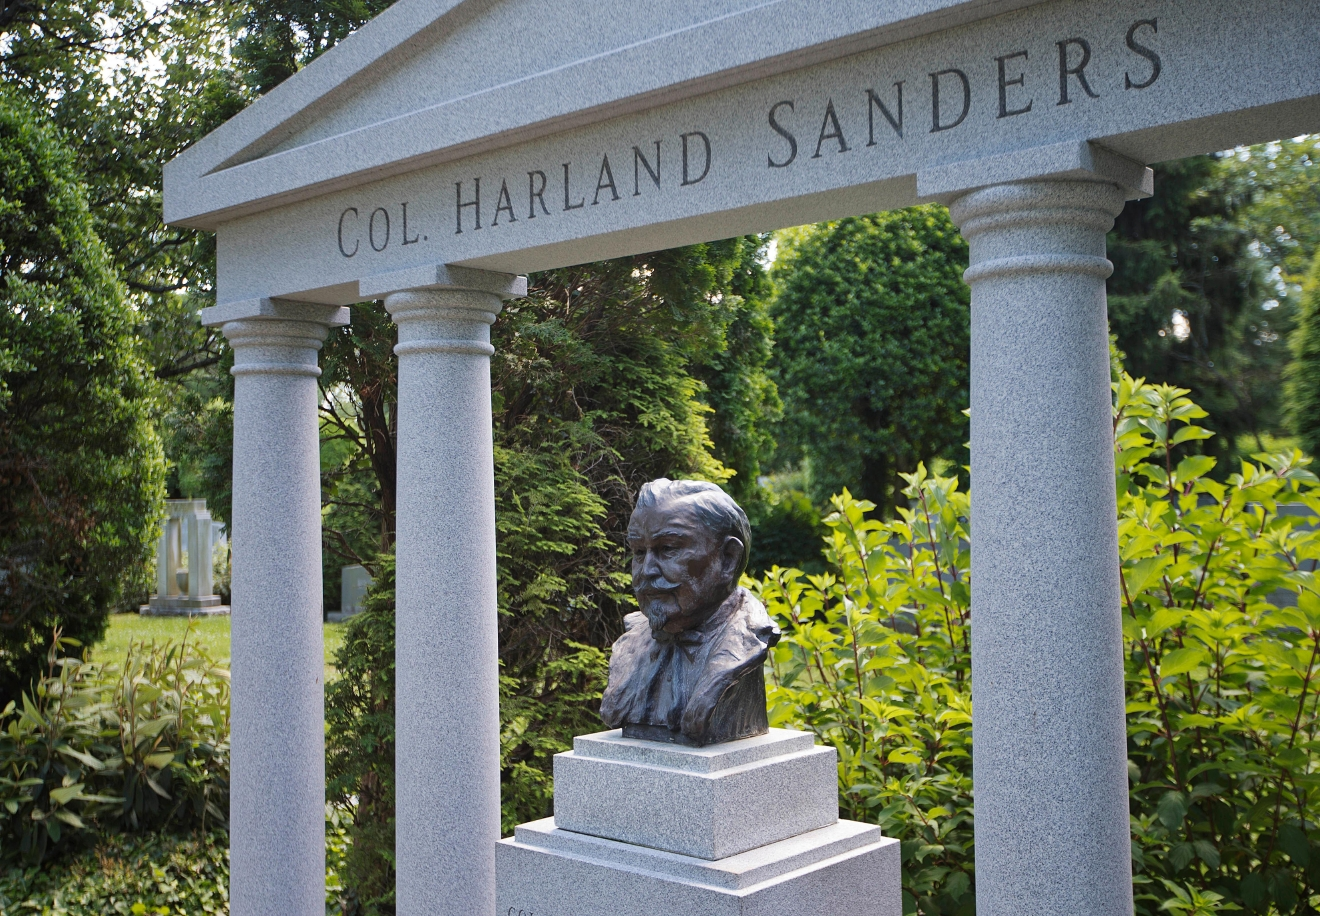 The bust of Colonel Harlan Sanders, the founder of Kentucky Fried Chicken, sits within his granite memorial at Cave Hill Cemetery Tuesday, June 7, 2016, in Louisville, Ky. Muhammad Ali's burial will be in Cave Hill Cemetery, the final resting place for many of the city's most prominent residents. Ali's gravesite will far more subdued, in contrast to his oversized personality and life. A modest marker, in accord with Muslim tradition, is planned, said his attorney, Ron Tweel. (AP Photo/David Goldman)